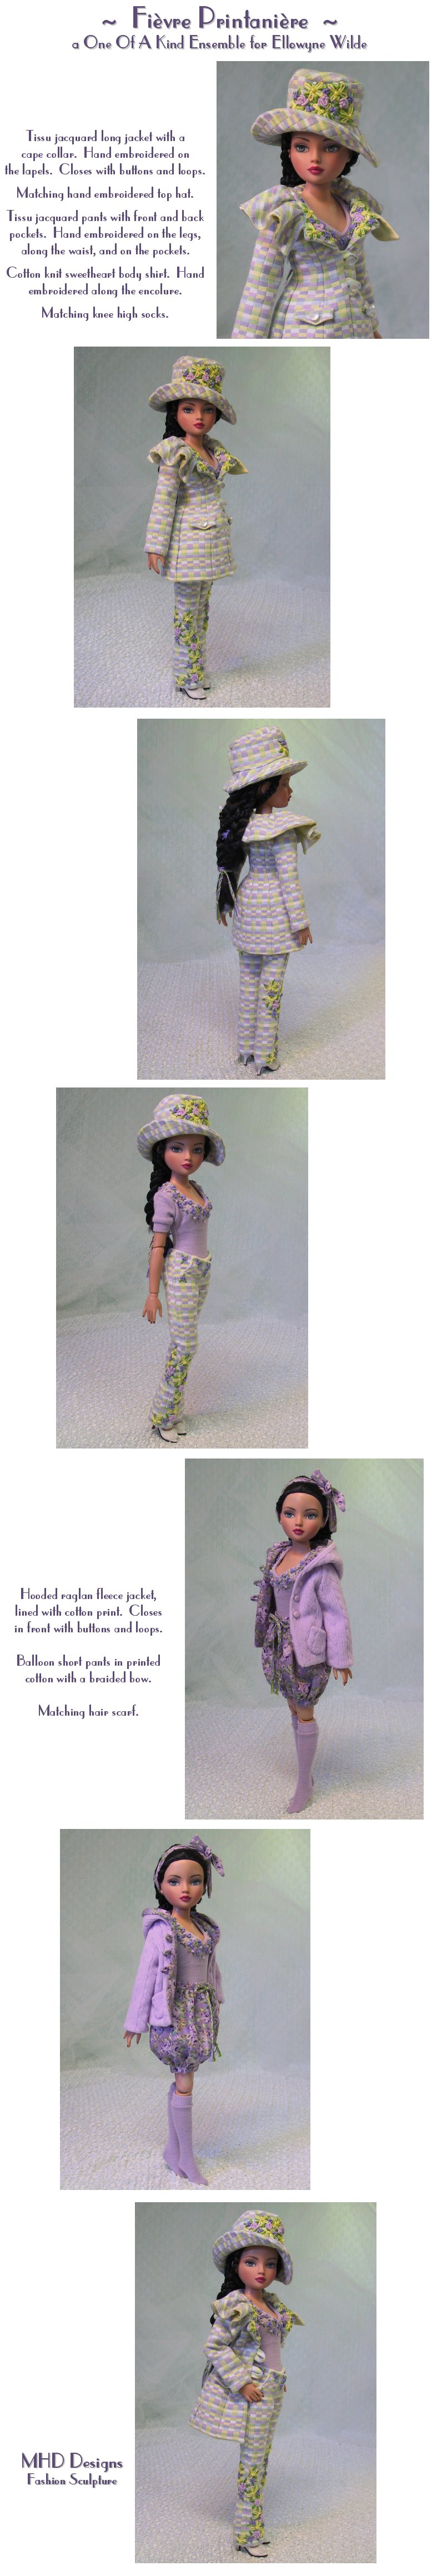 Spring Fever - an OOAK Extended Ensemble by MHD Designs - High Resolution   Photographs, your patience is appreciated!